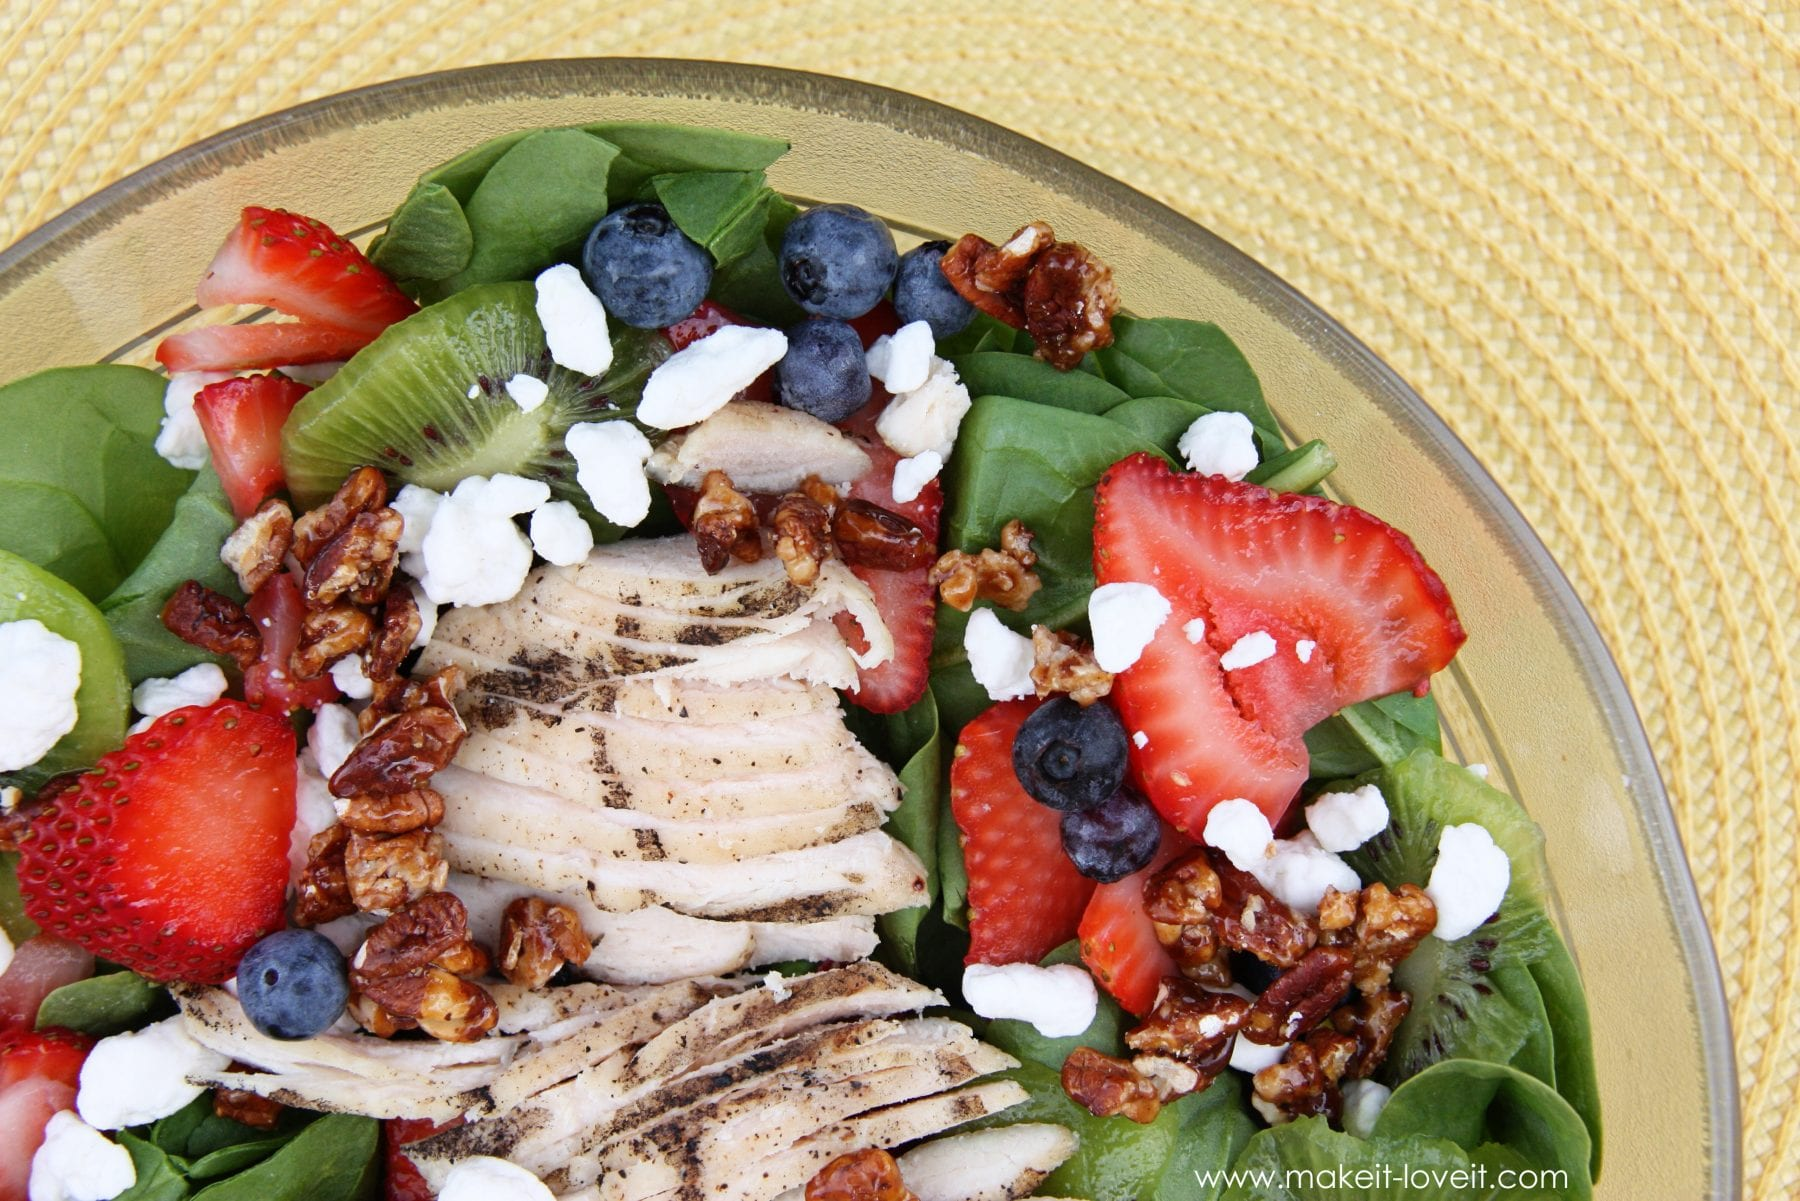 Spinach and Fruit Summer Salad